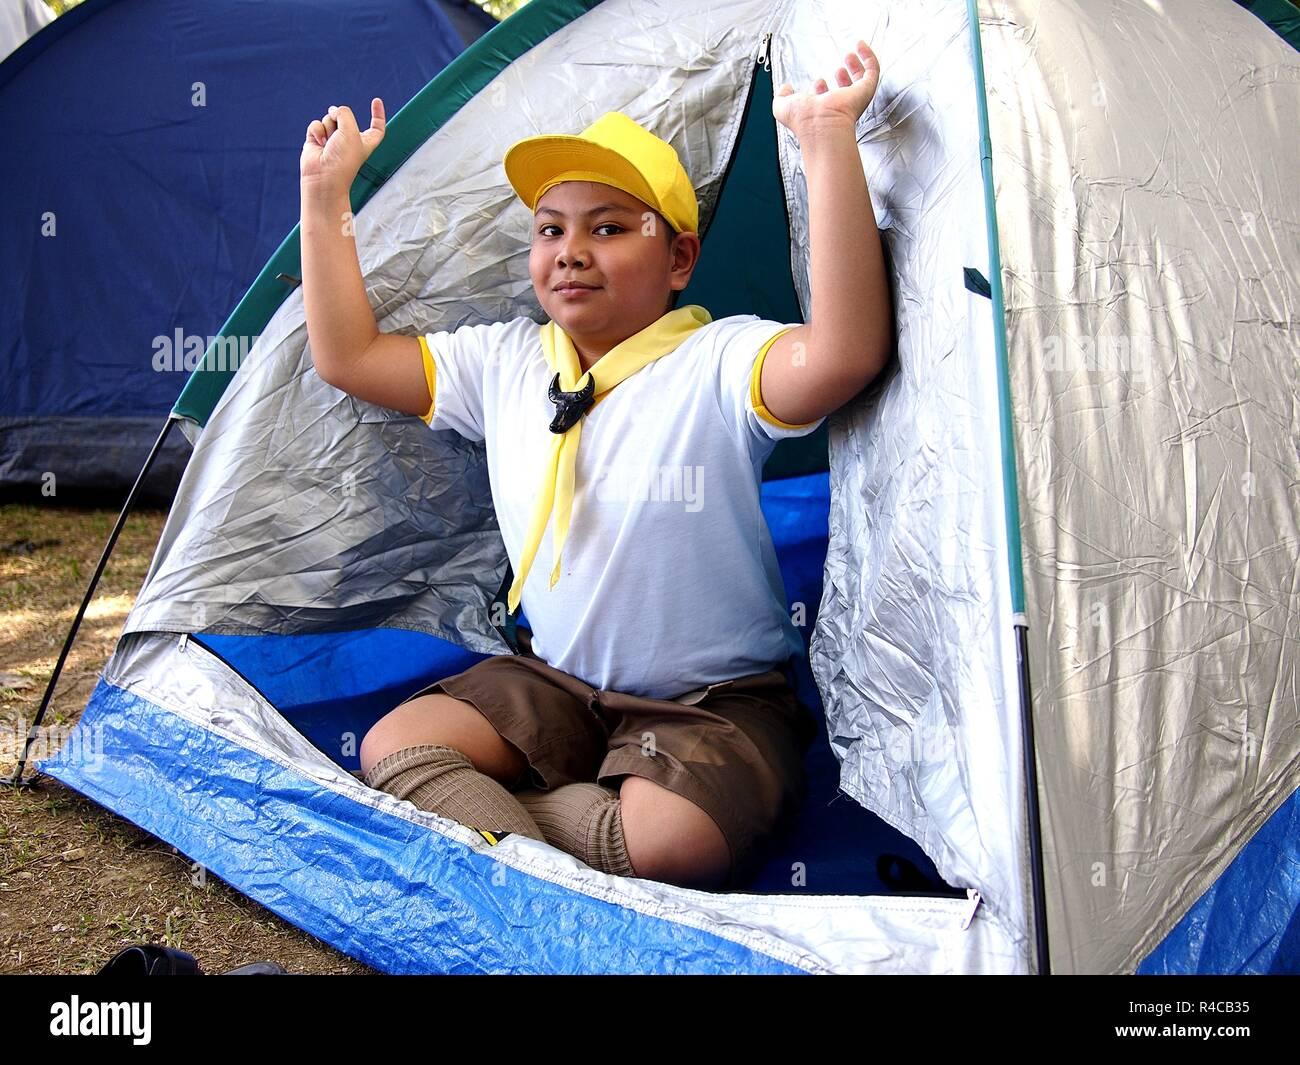 Photo of a young boy scout inside a camping tent - Stock Image